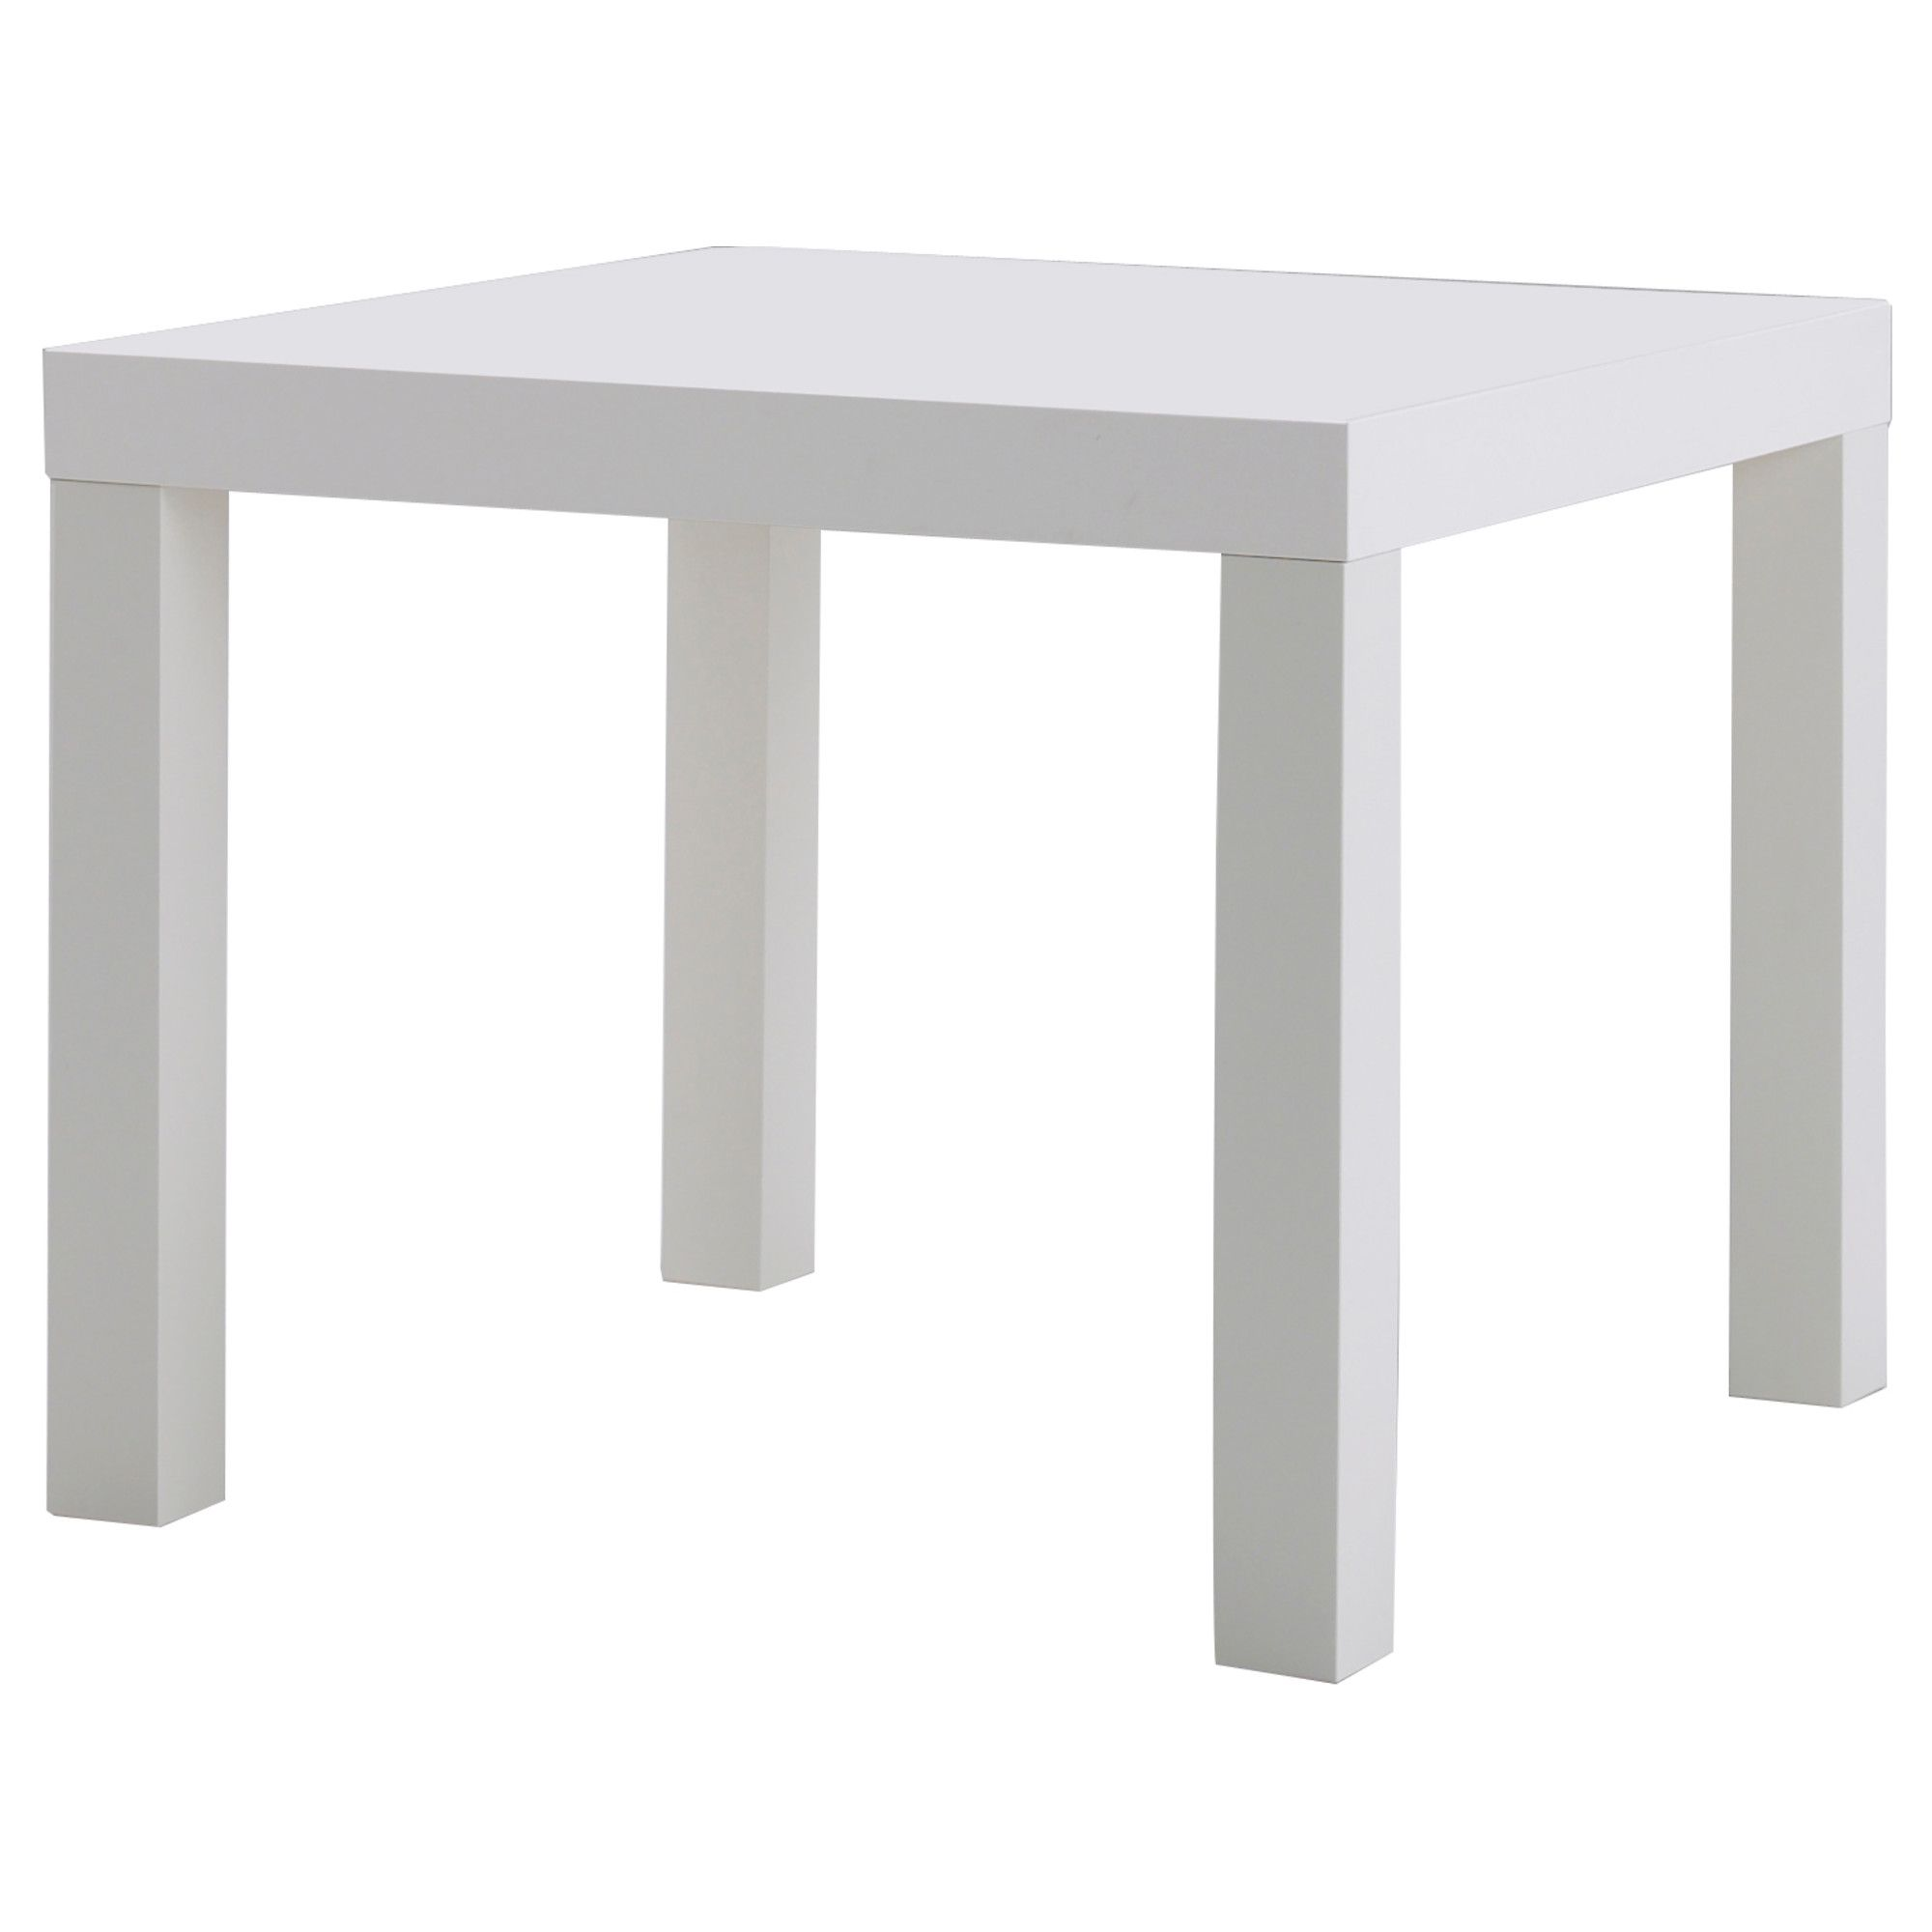 Petite Table Ikea Lack Side Table White Storefront Ikea Table Living Room